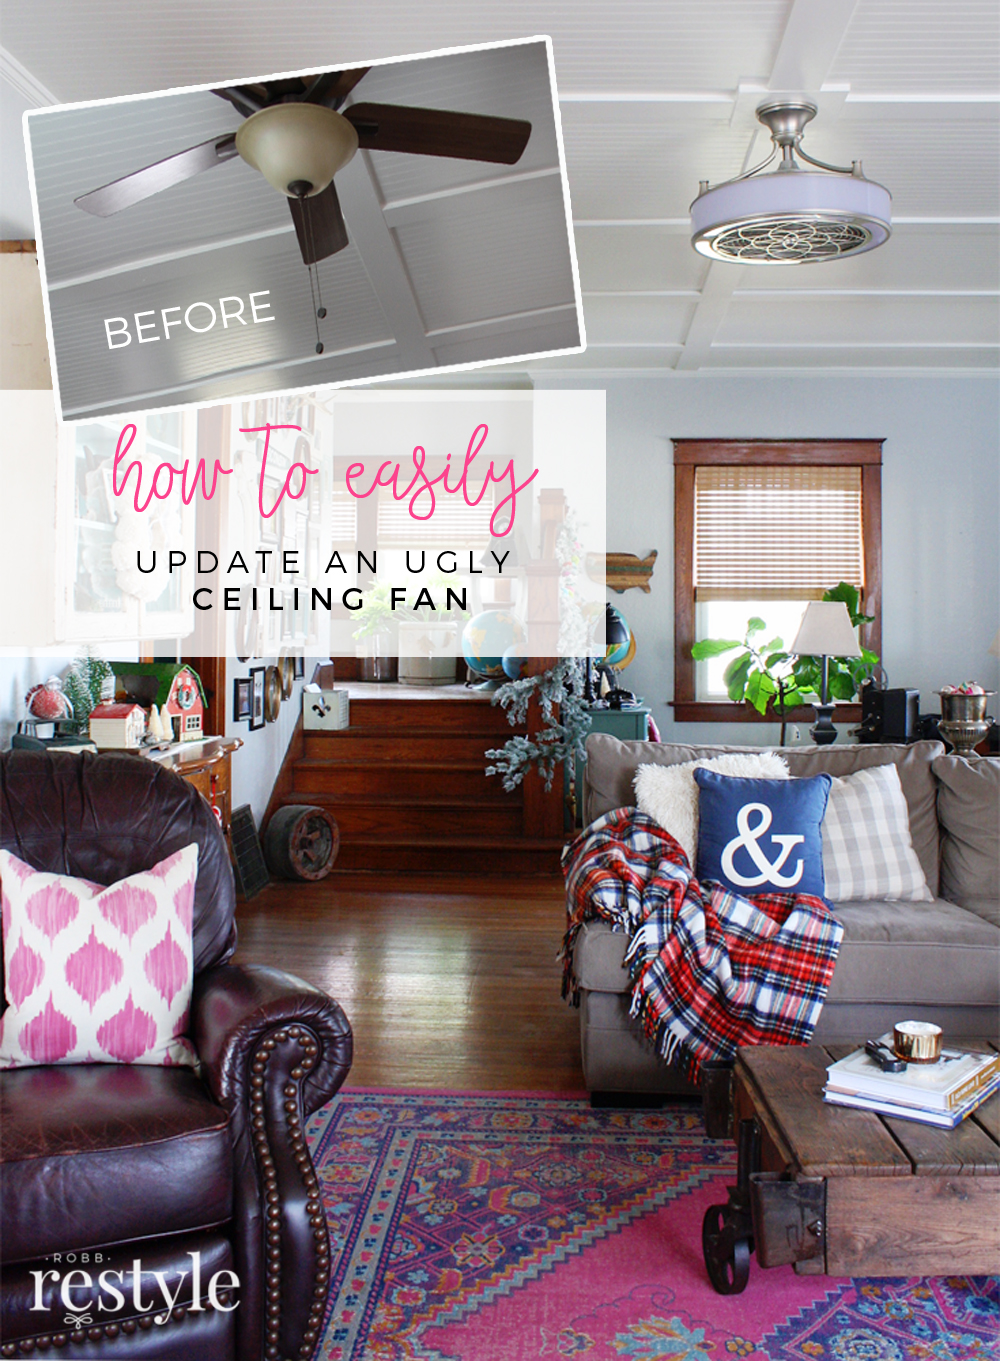 How to Easily Upgrade Your Ugly Ceiling Fan